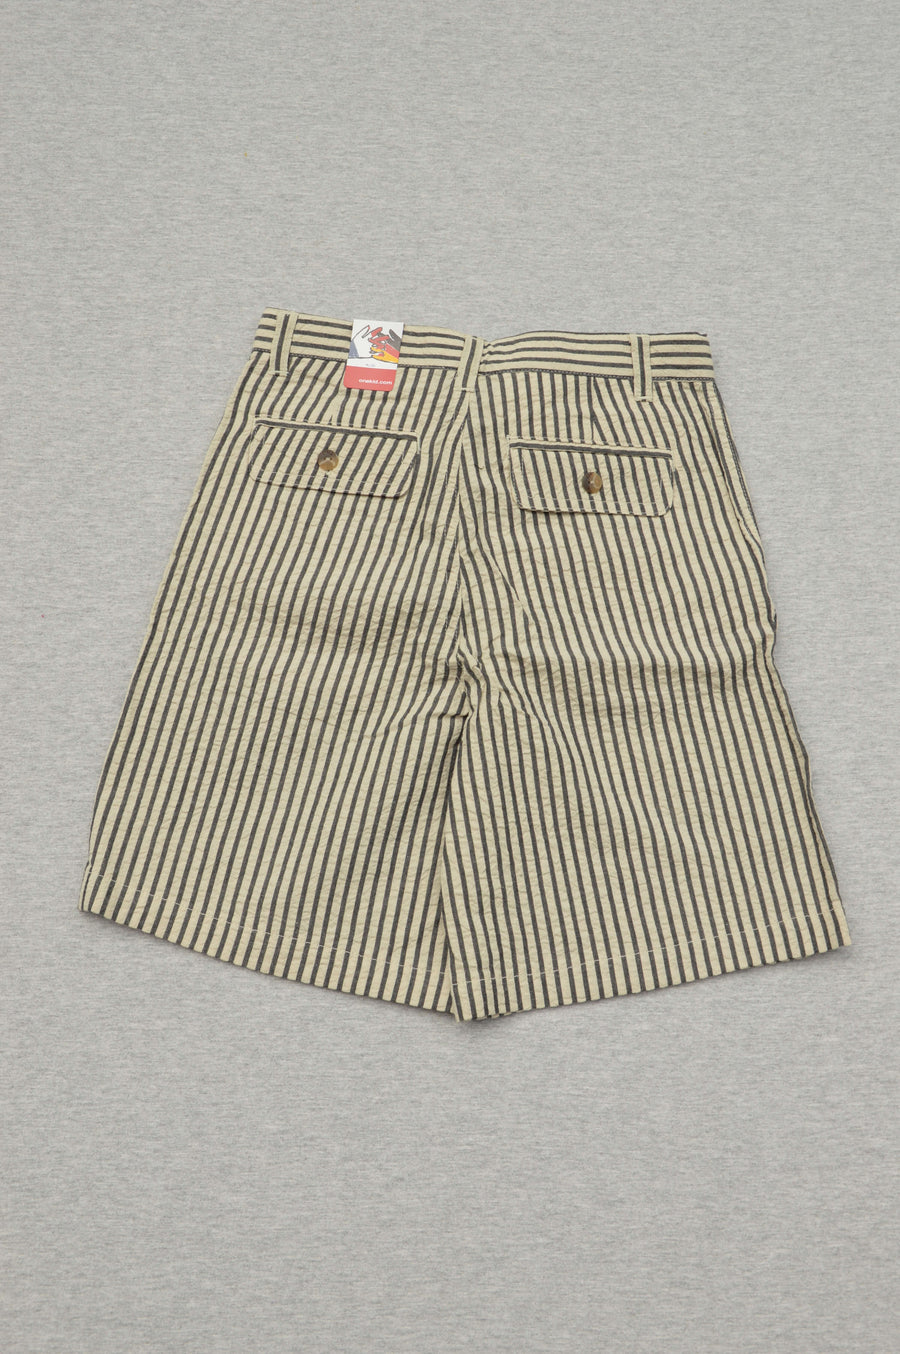 Onekid - brand new - black striped seersucker dress shorts, size 7